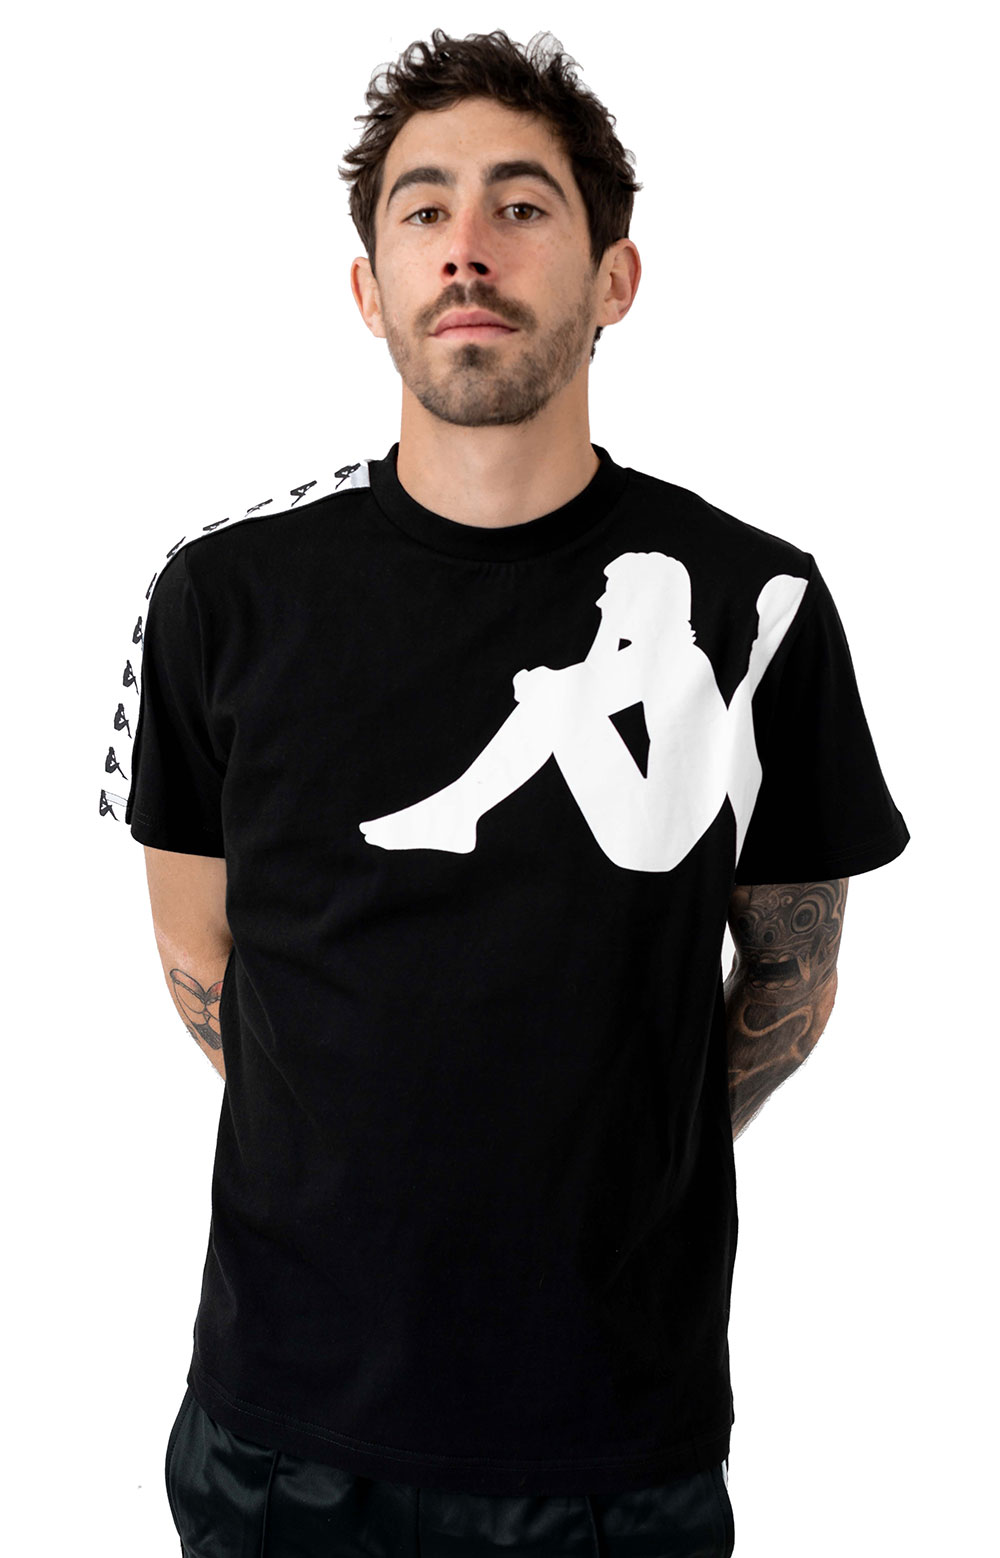 Authentic Buys T-Shirt - Black/White